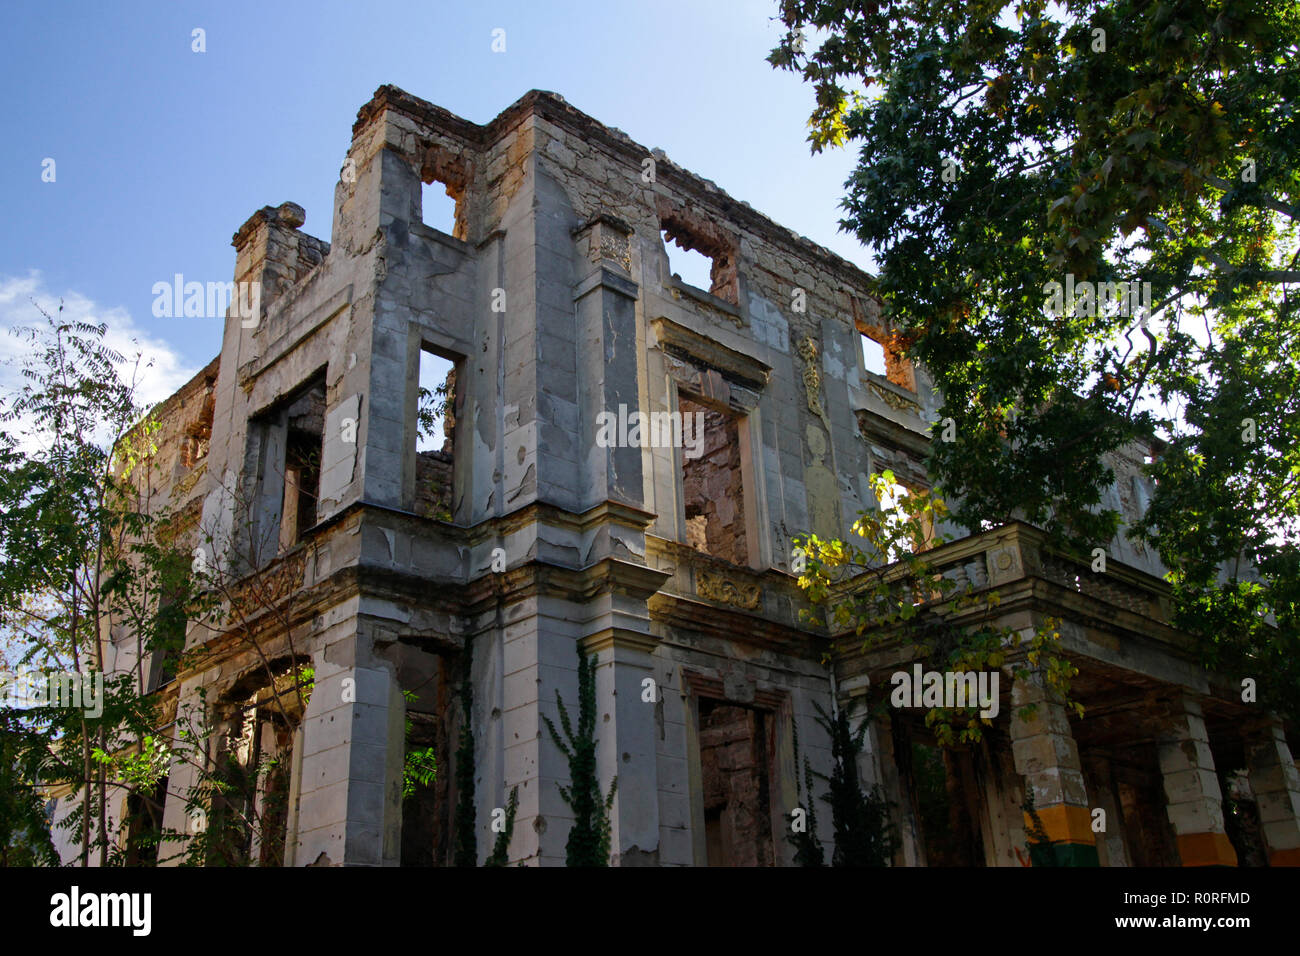 Remains of the war in Mostar, Bosnia and Herzegovina: Ruin without a roof with trees growing inside of it - Stock Image